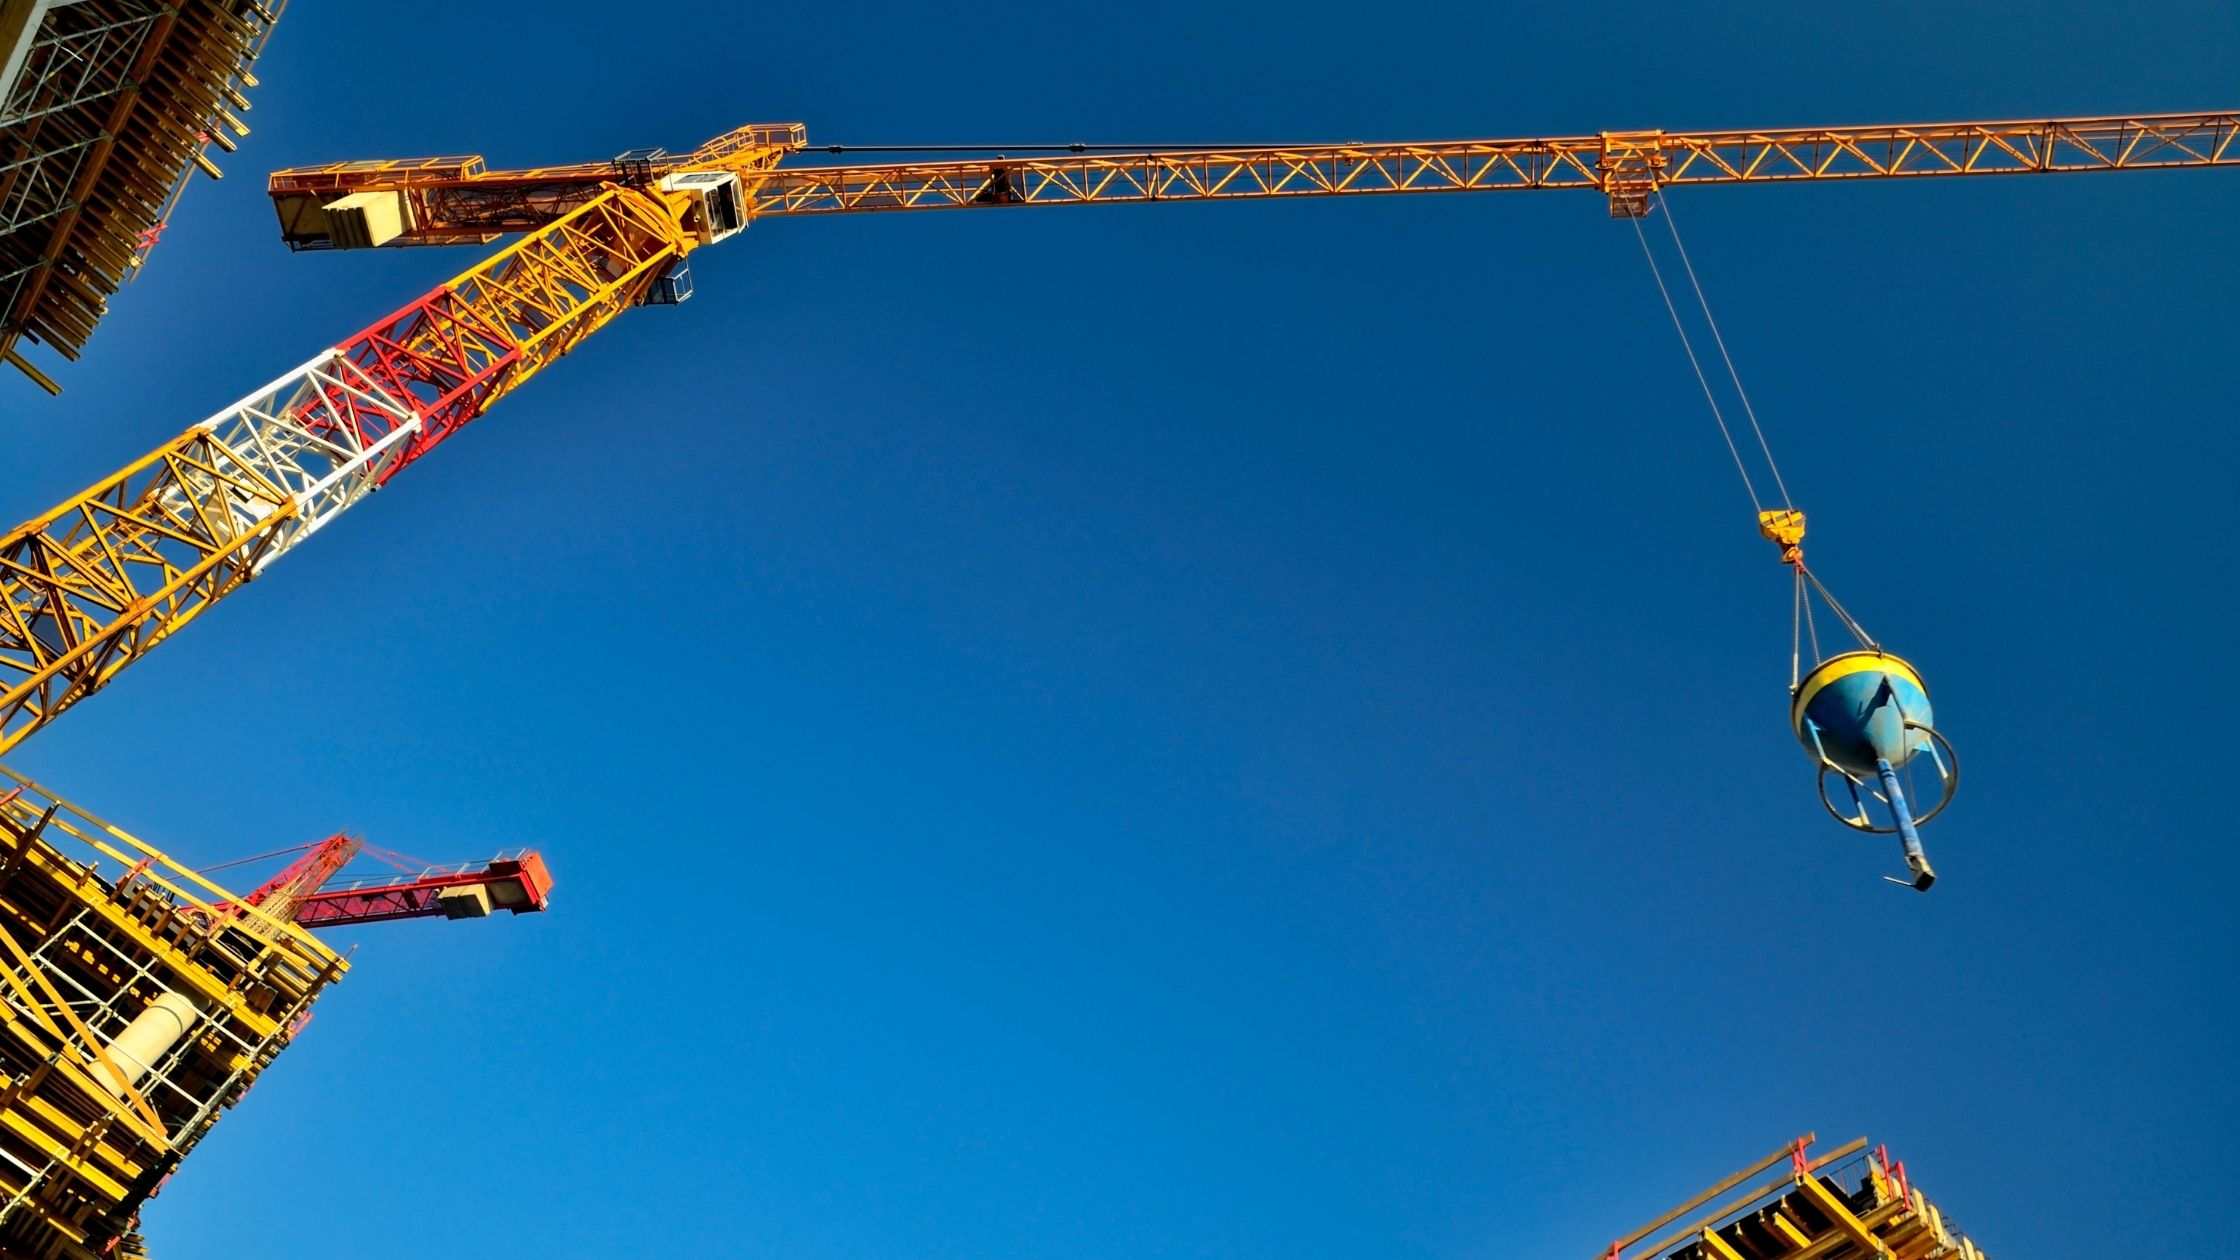 Upgrade Construction Equipment Like Hoists and Lifts